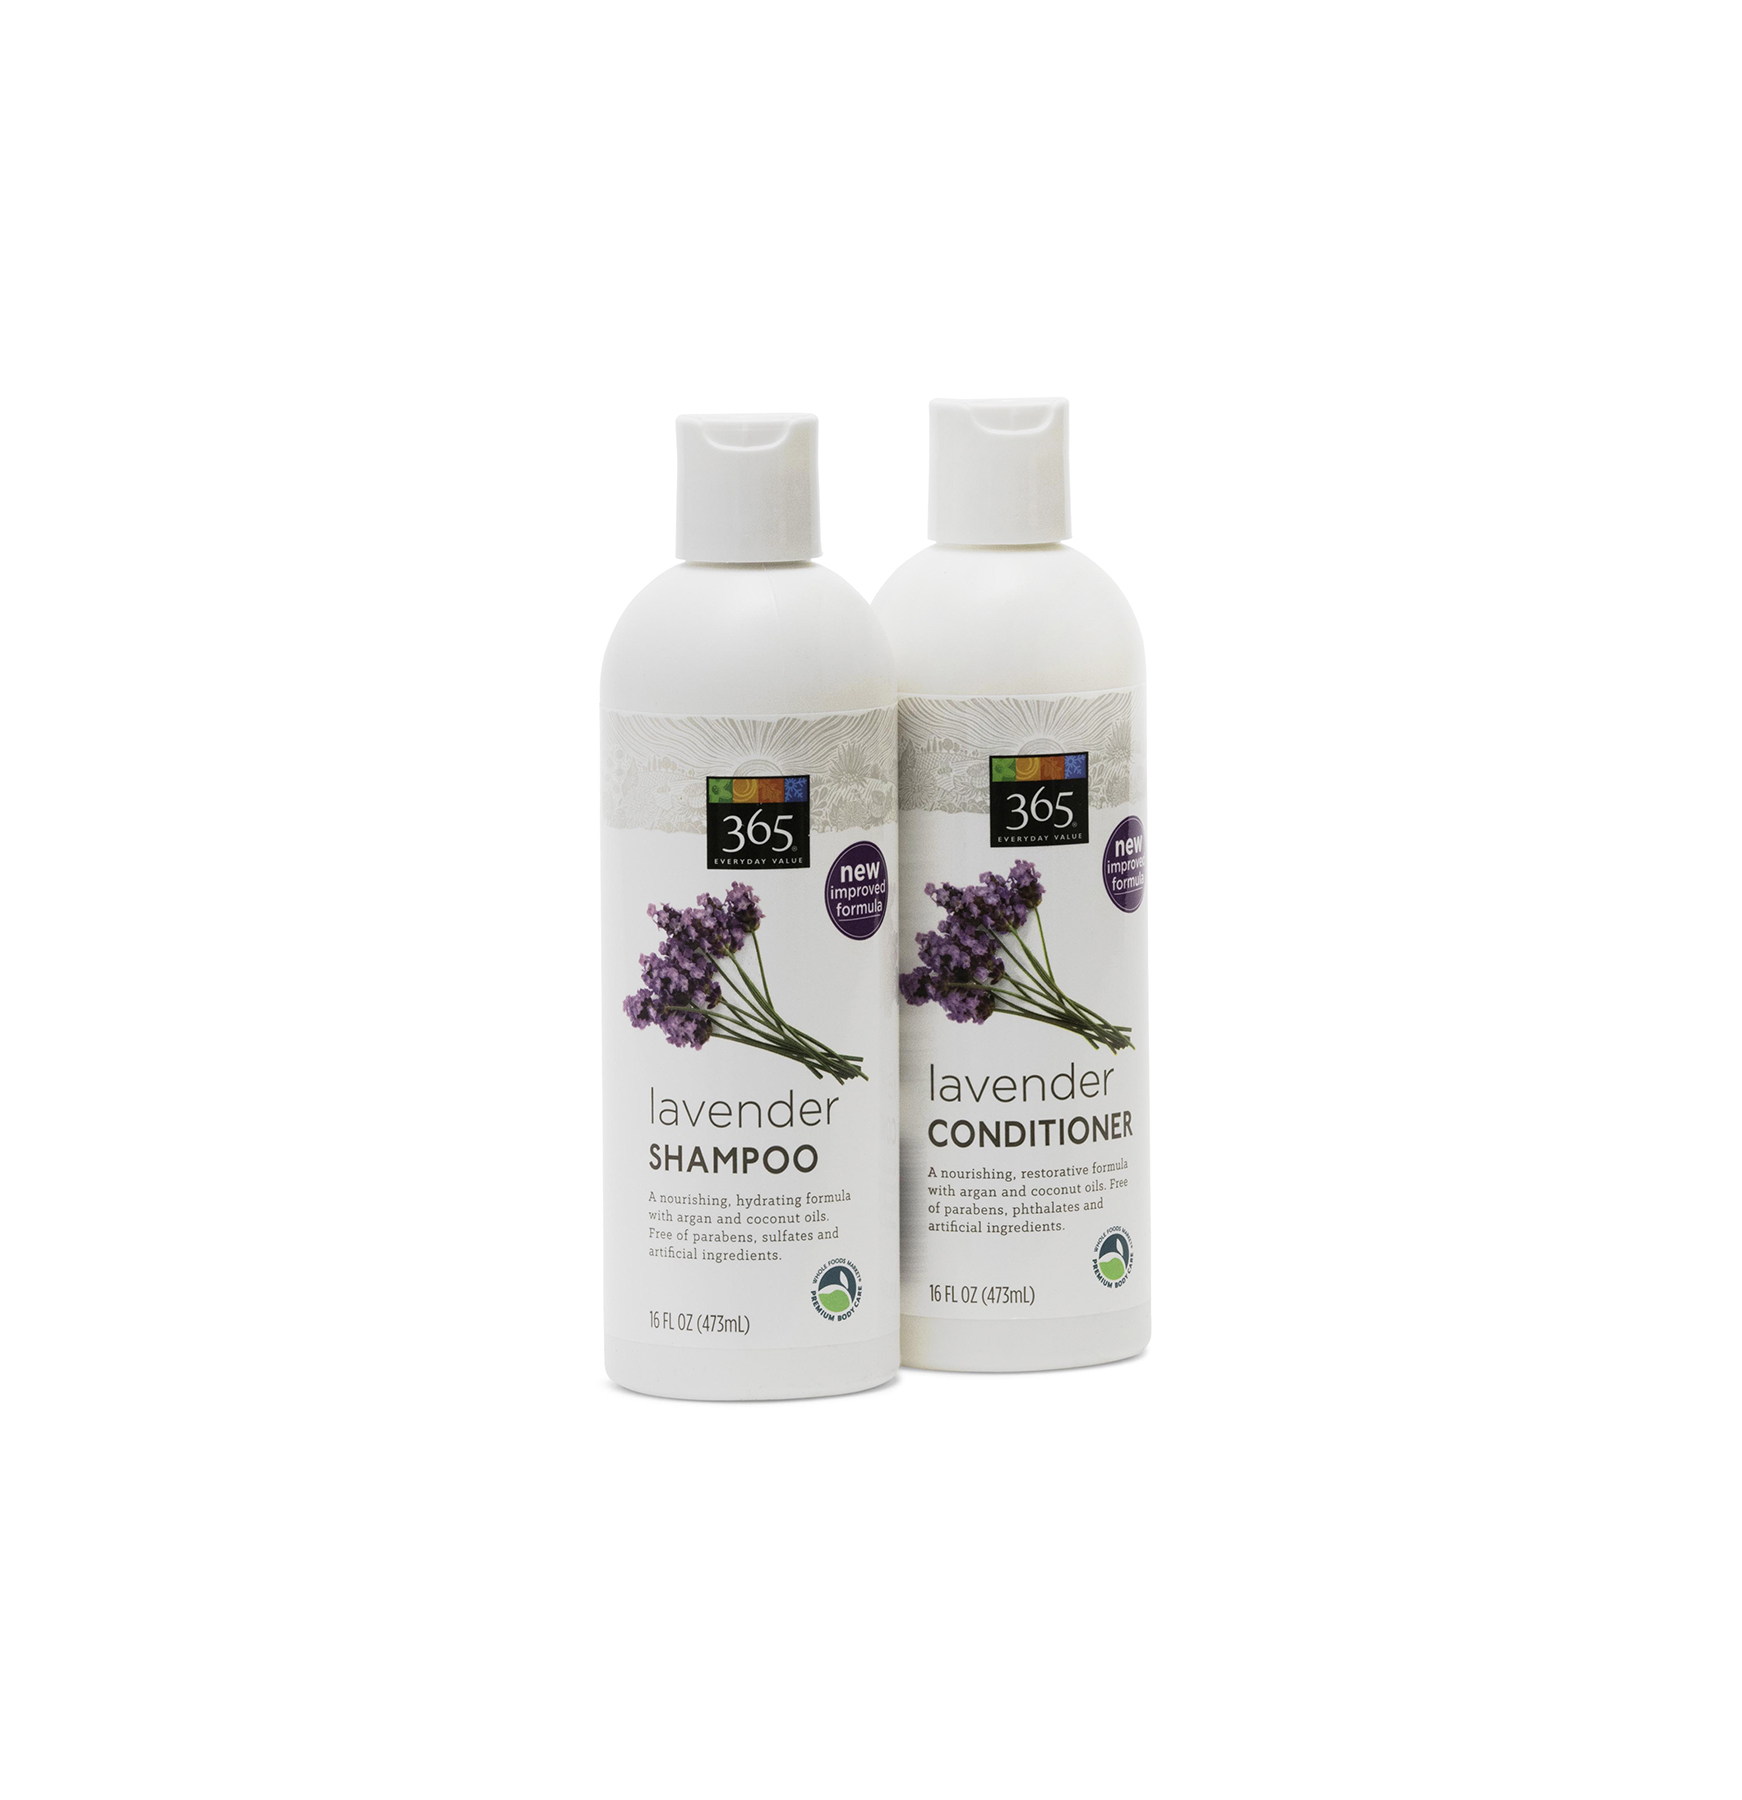 365-lavender-shampoo-conditioner